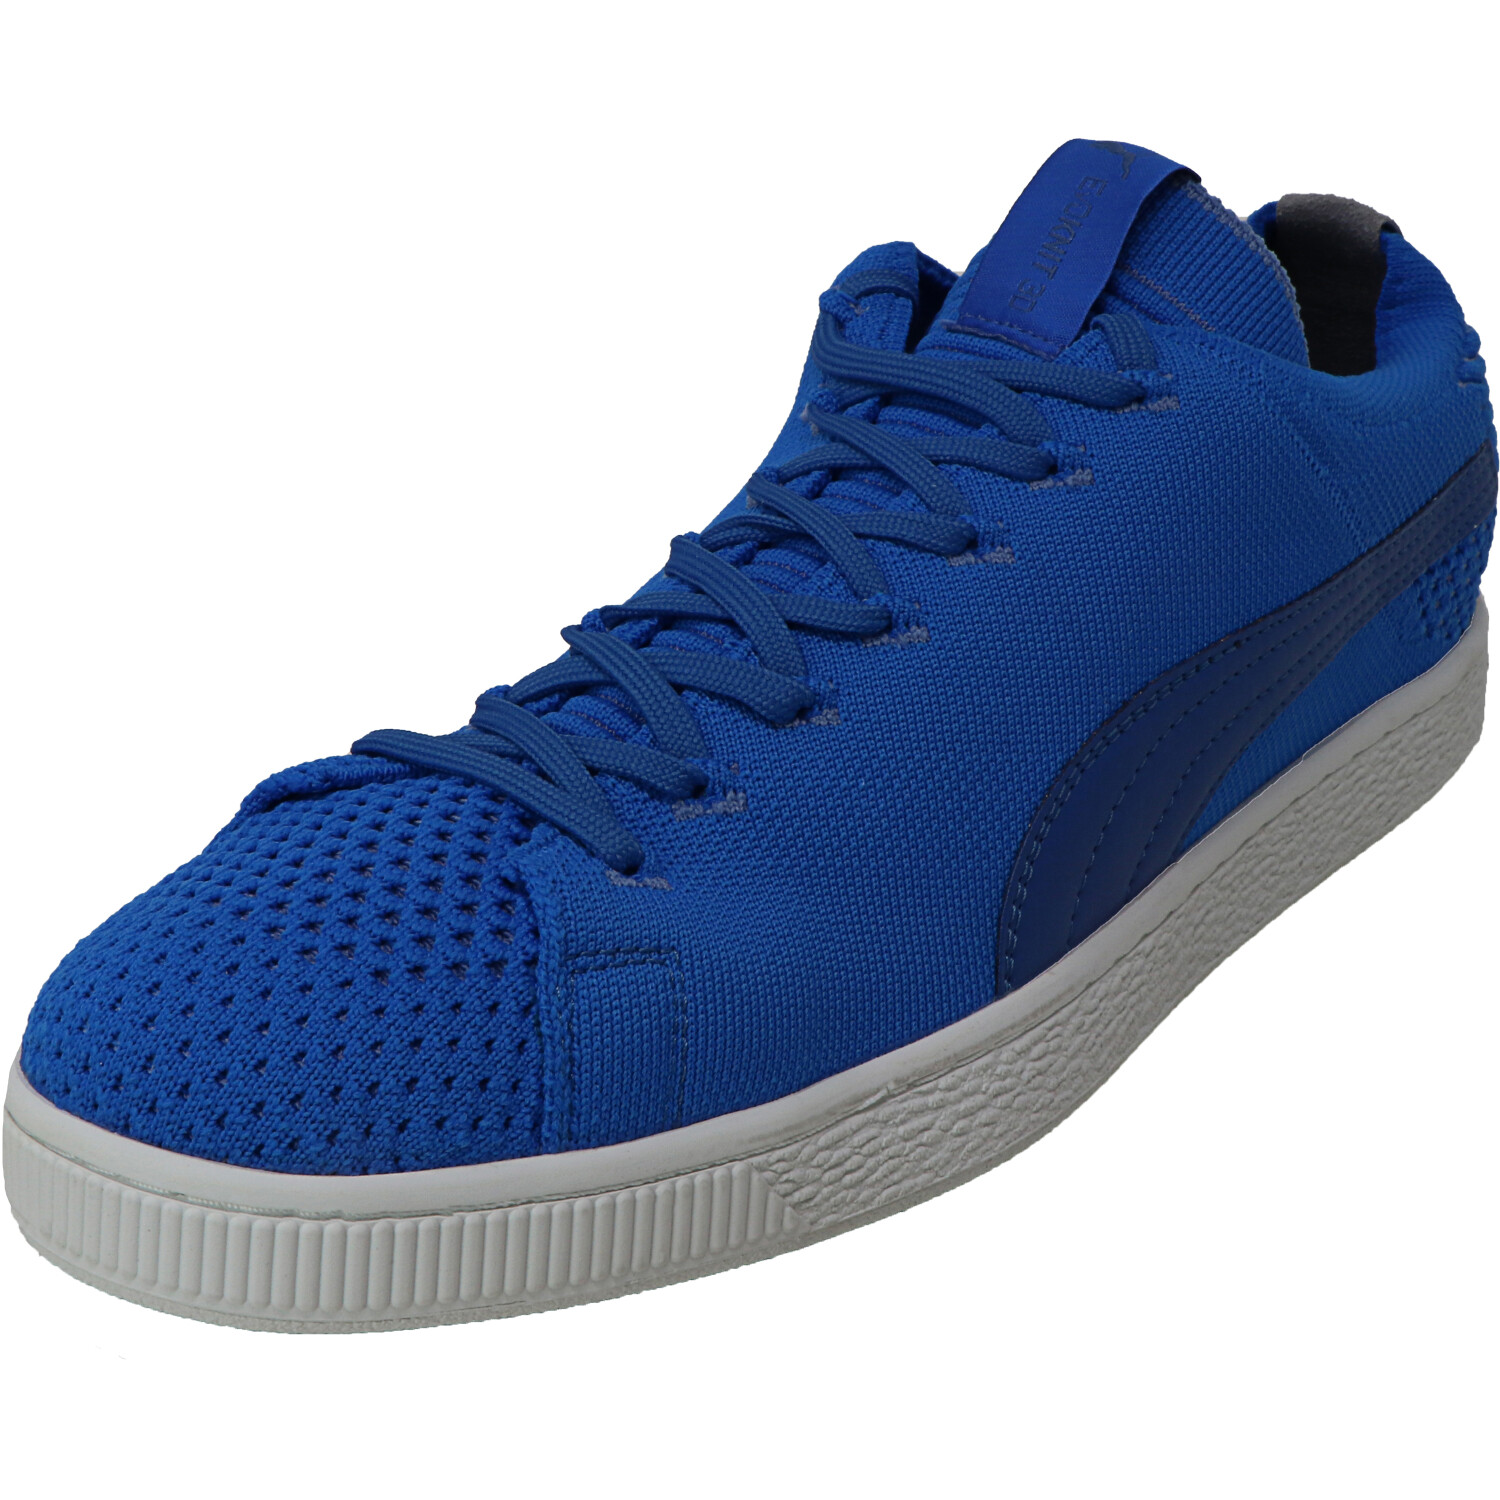 Puma Men's Basket Evoknit 3D Electric Blue Lemo / Yonder White Ankle-High Sneaker - 11M